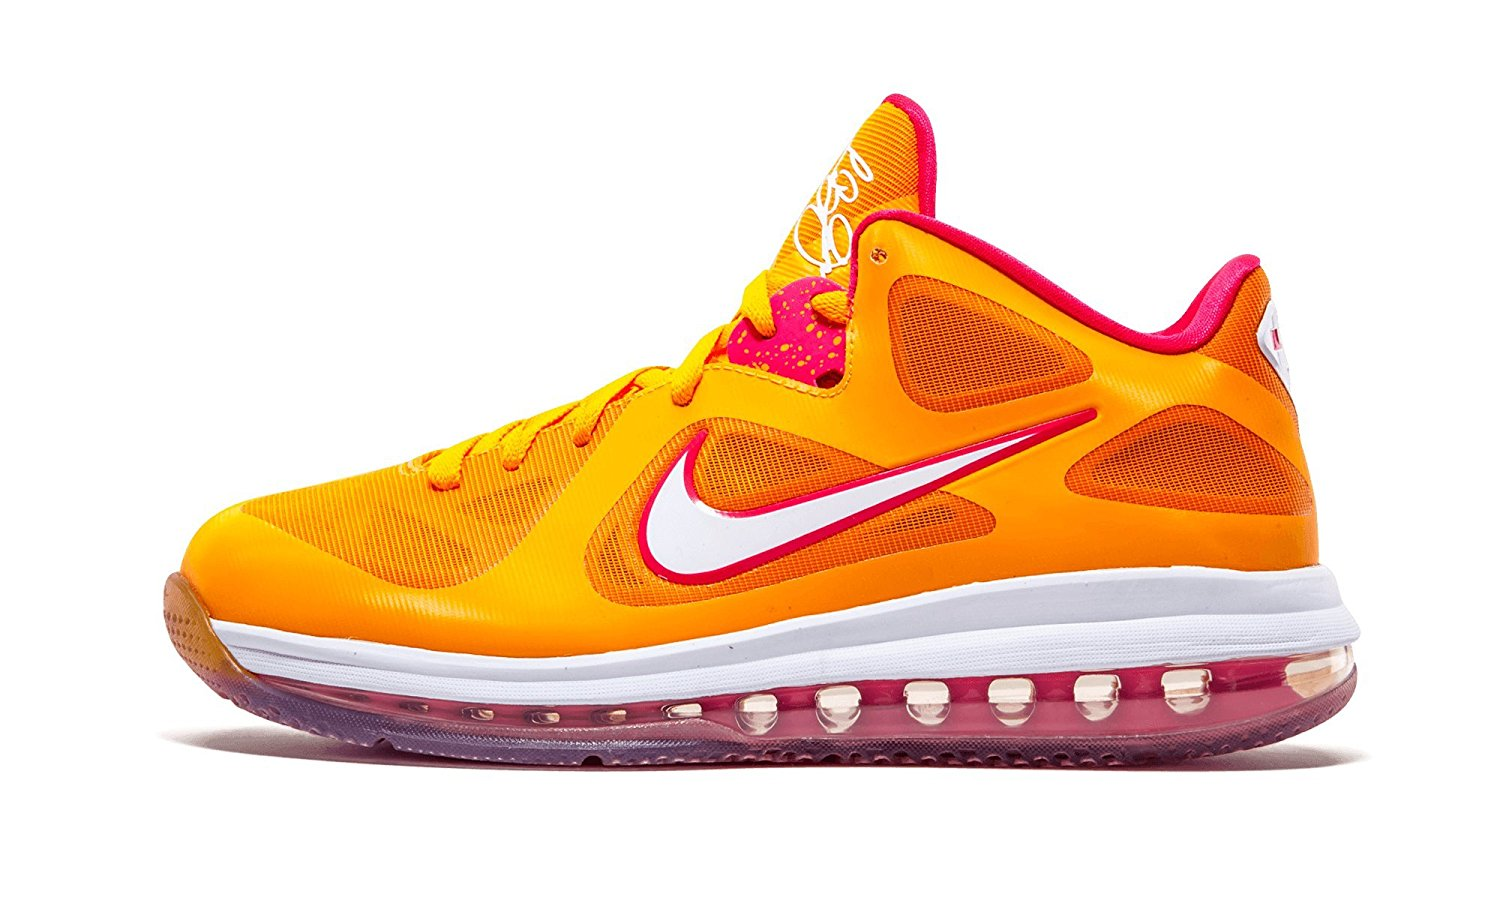 detailed look 163f1 063ee Get Quotations · Nike LEBRON 9 Low Miami Floridians Vivid Orange Cherry  Easter Night 510811-800